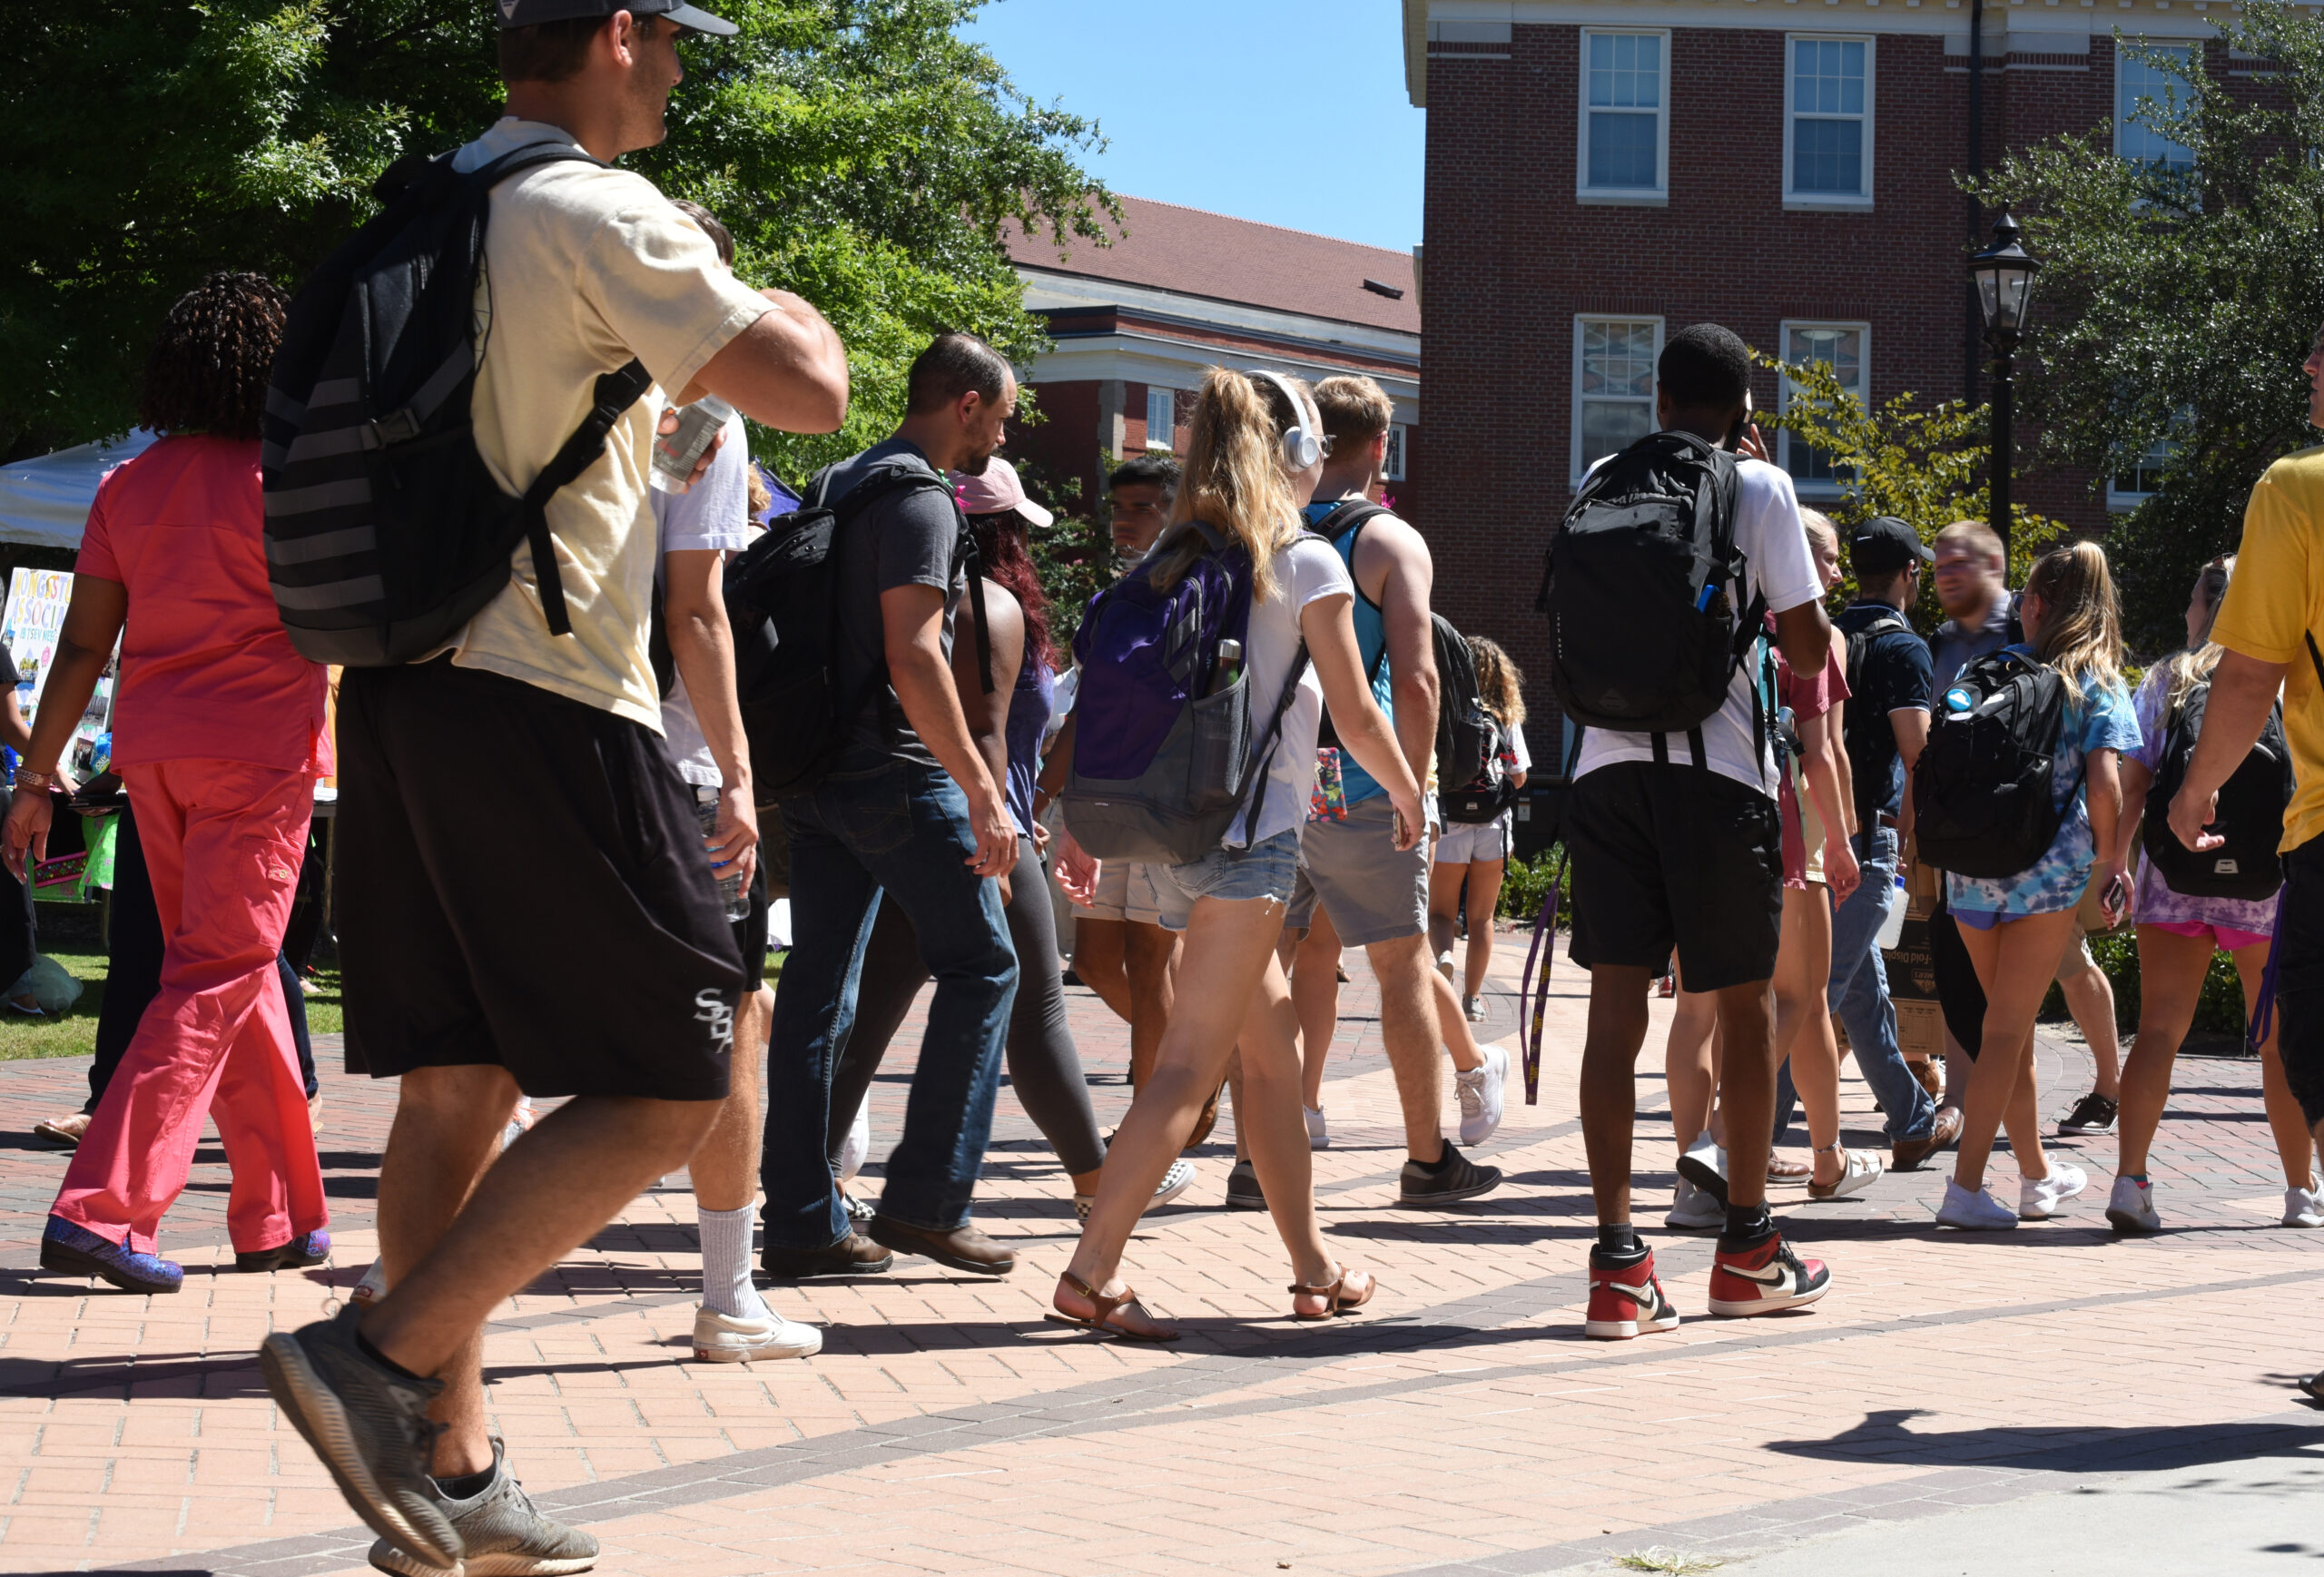 College students walking across campus